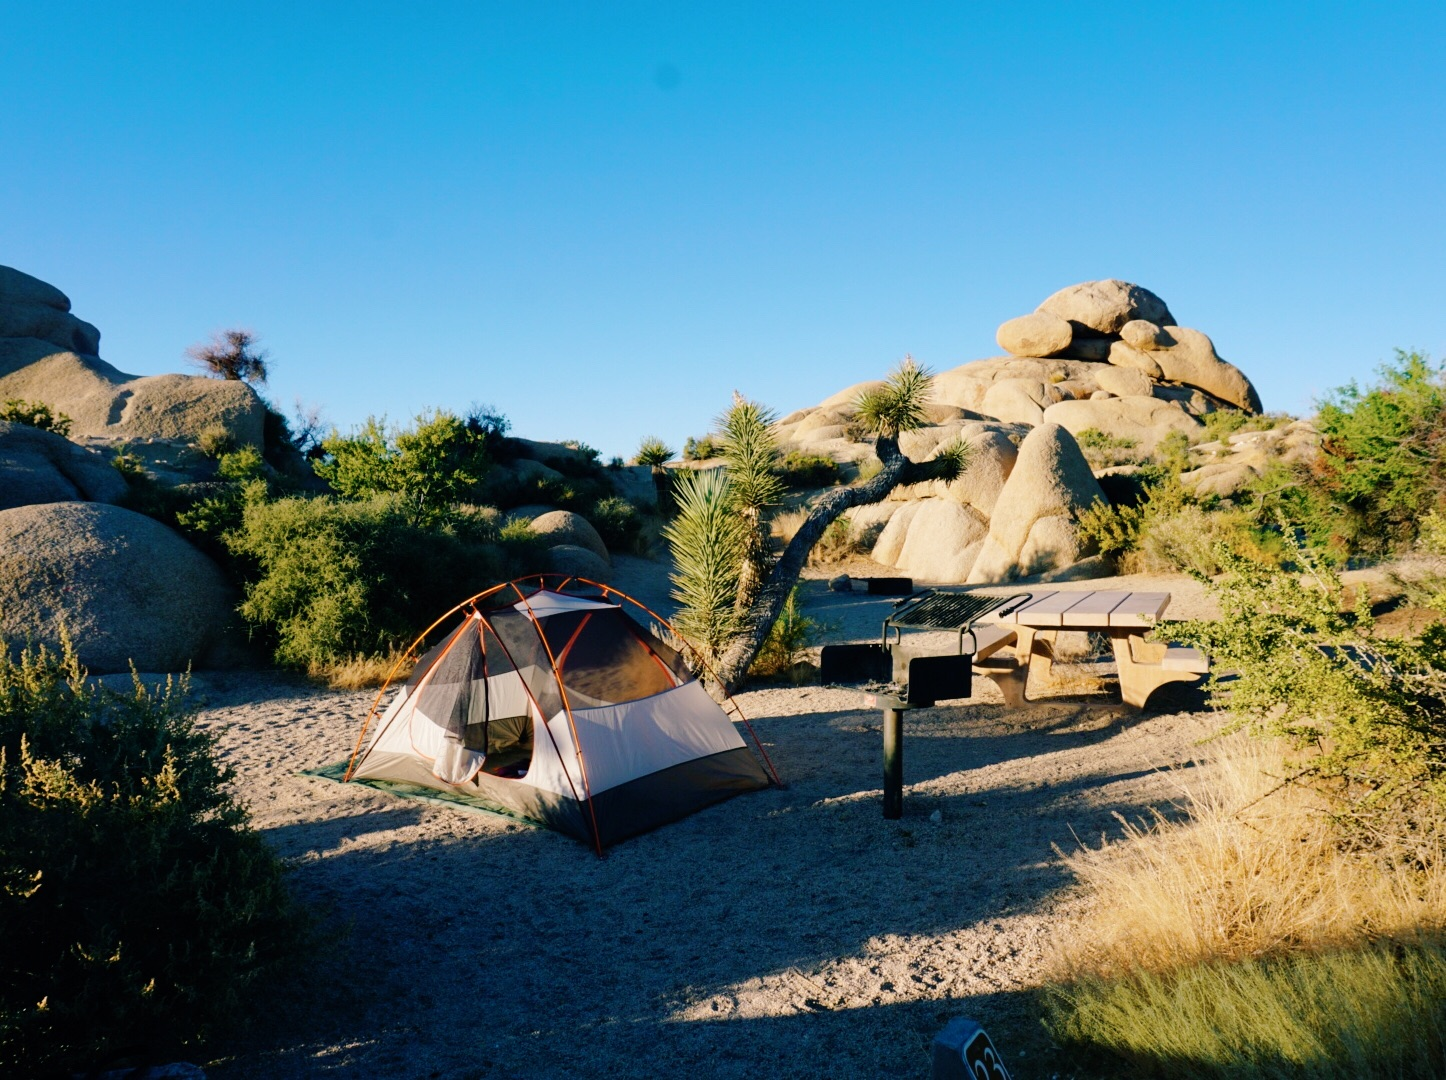 Tent set up at Jumbo Rocks in Joshua Tree National Park